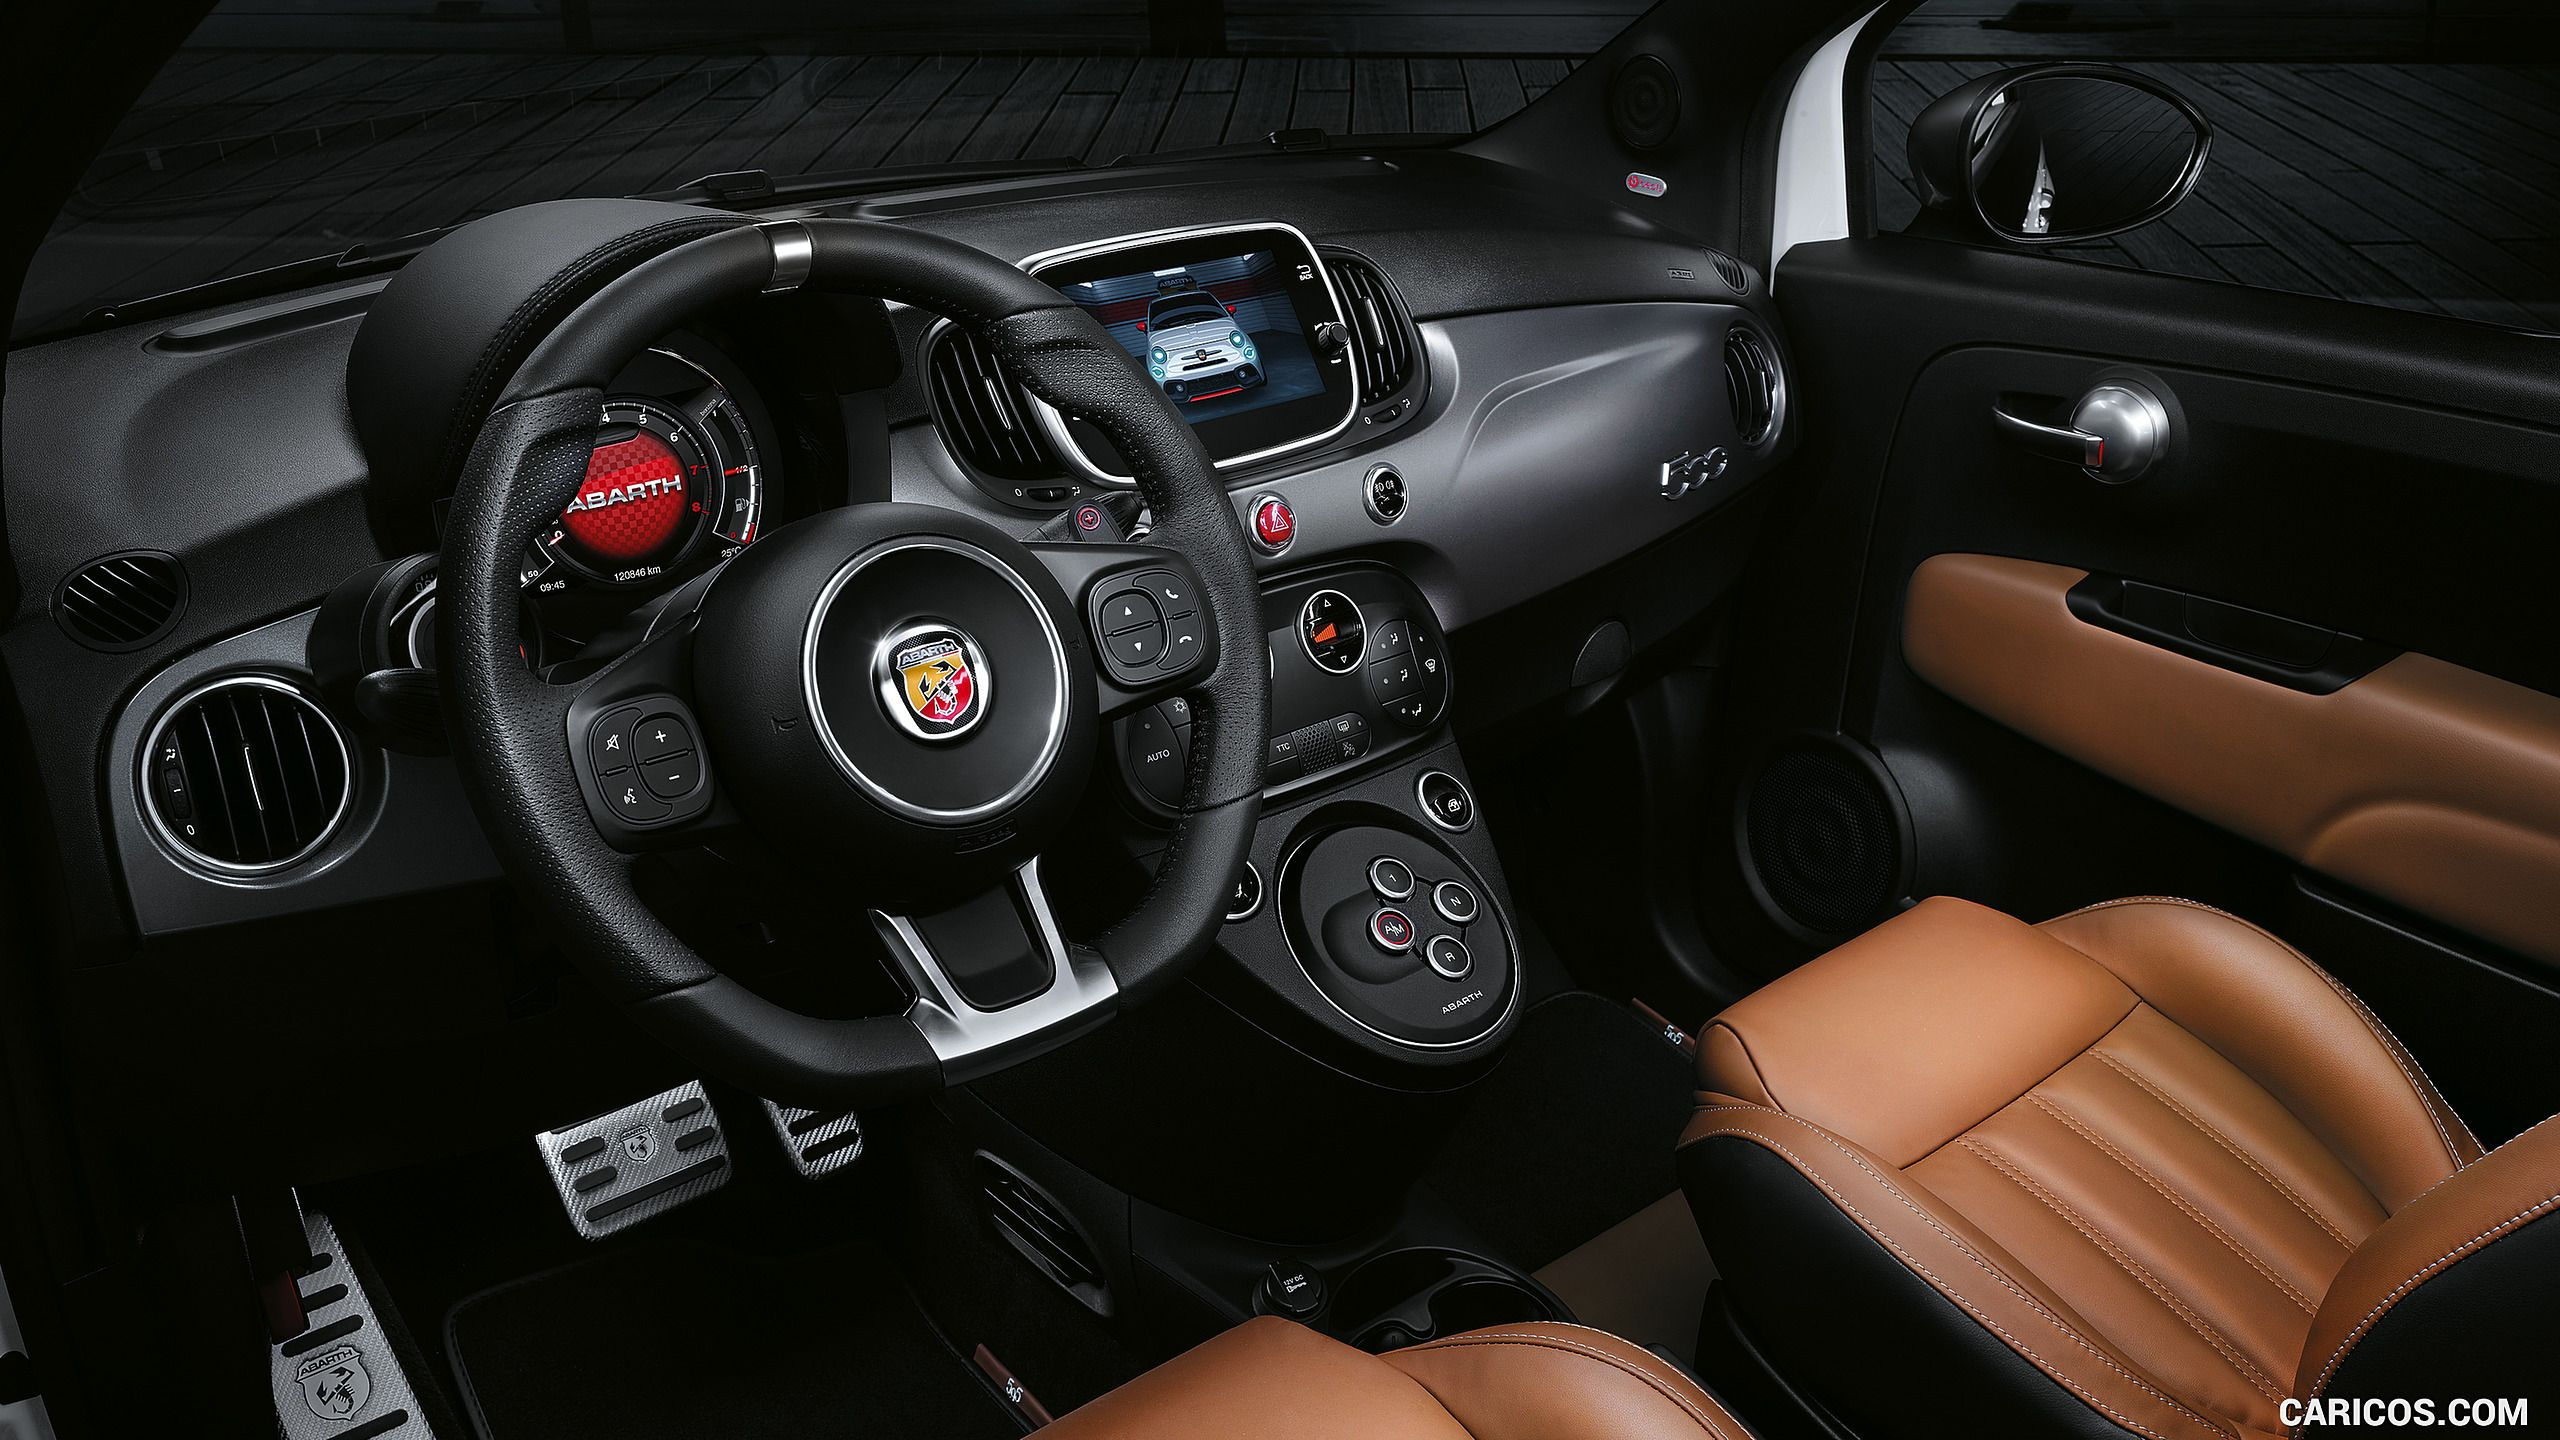 2017 Abarth 595 Color Modena Yellow Interior Hd Con Imagenes